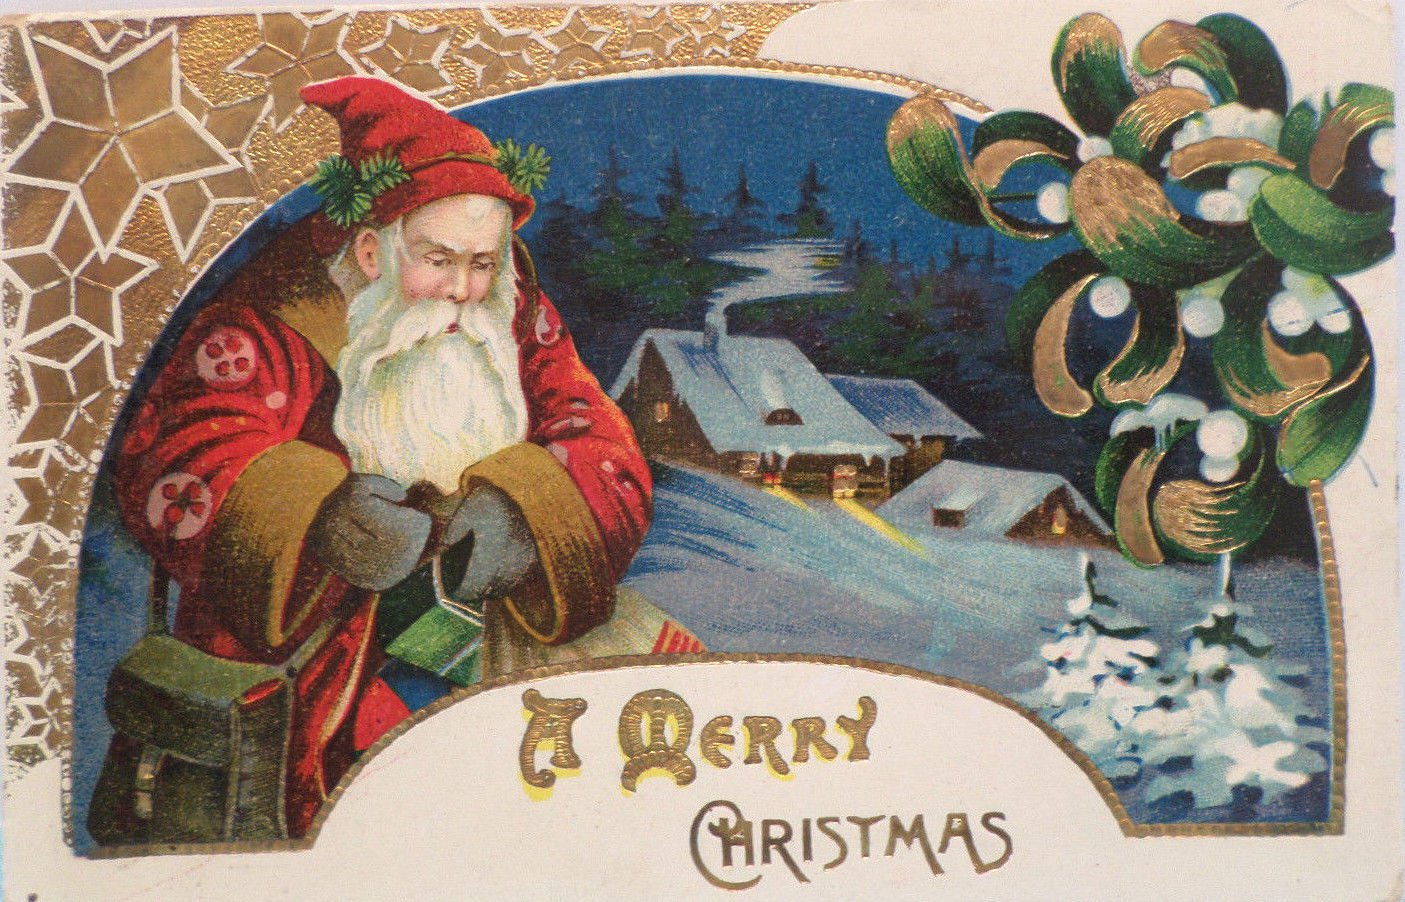 Antique 1913 Christmas Postcard  Santa Claus Glossy Posted Divided Embossed